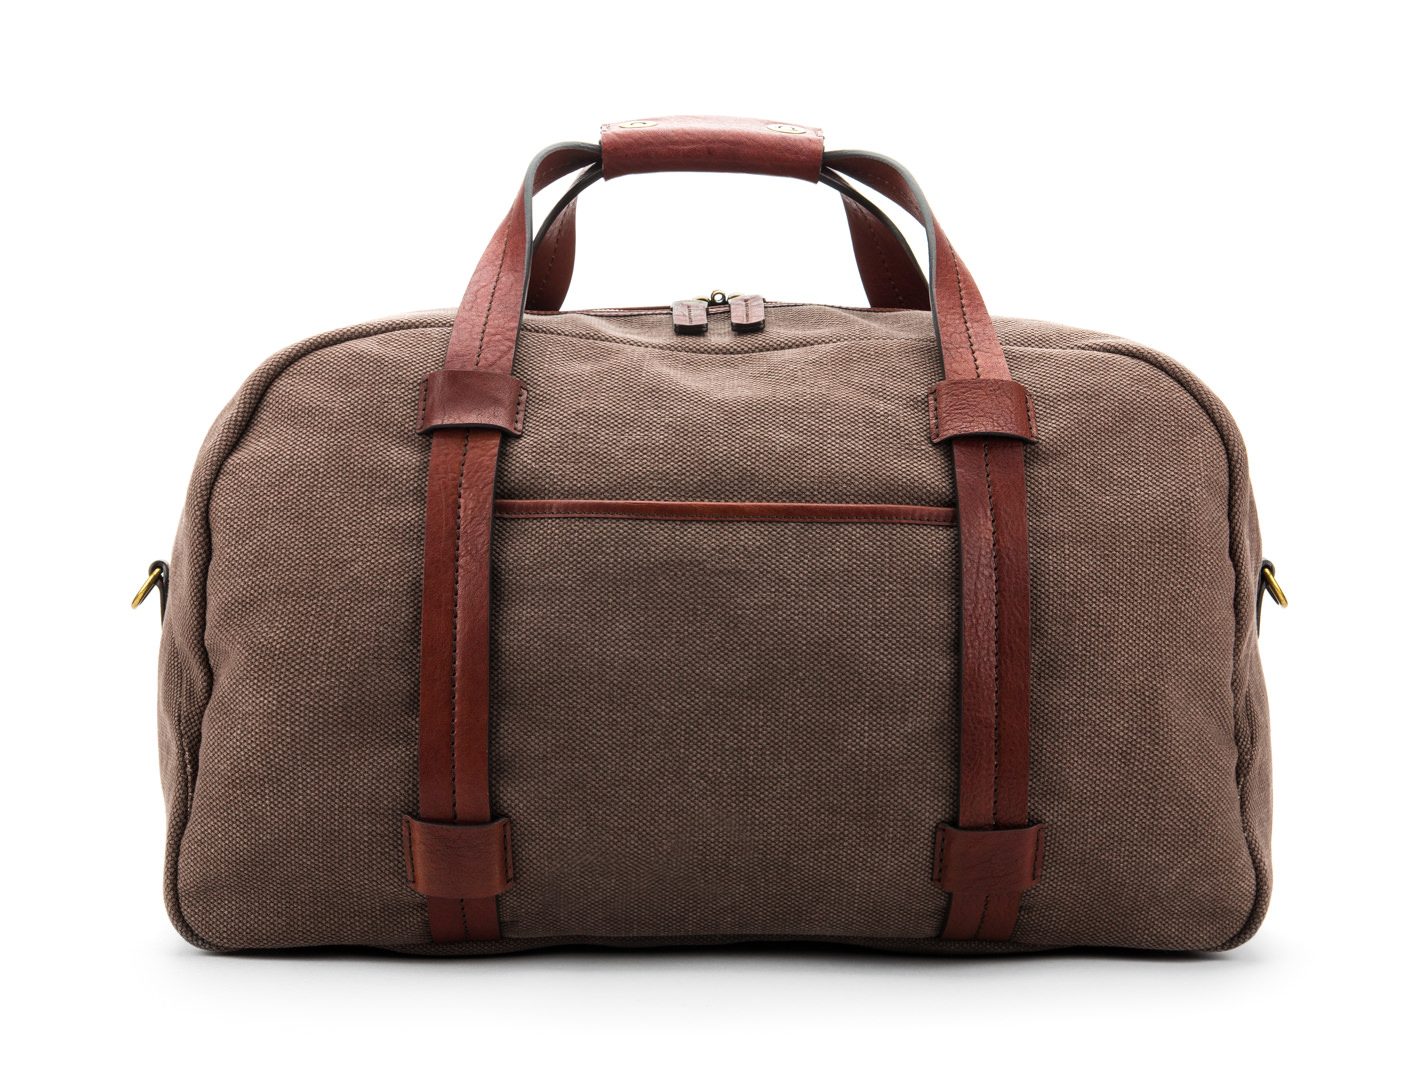 58cb52a00a15 Fabric   Washed Leather Duffle